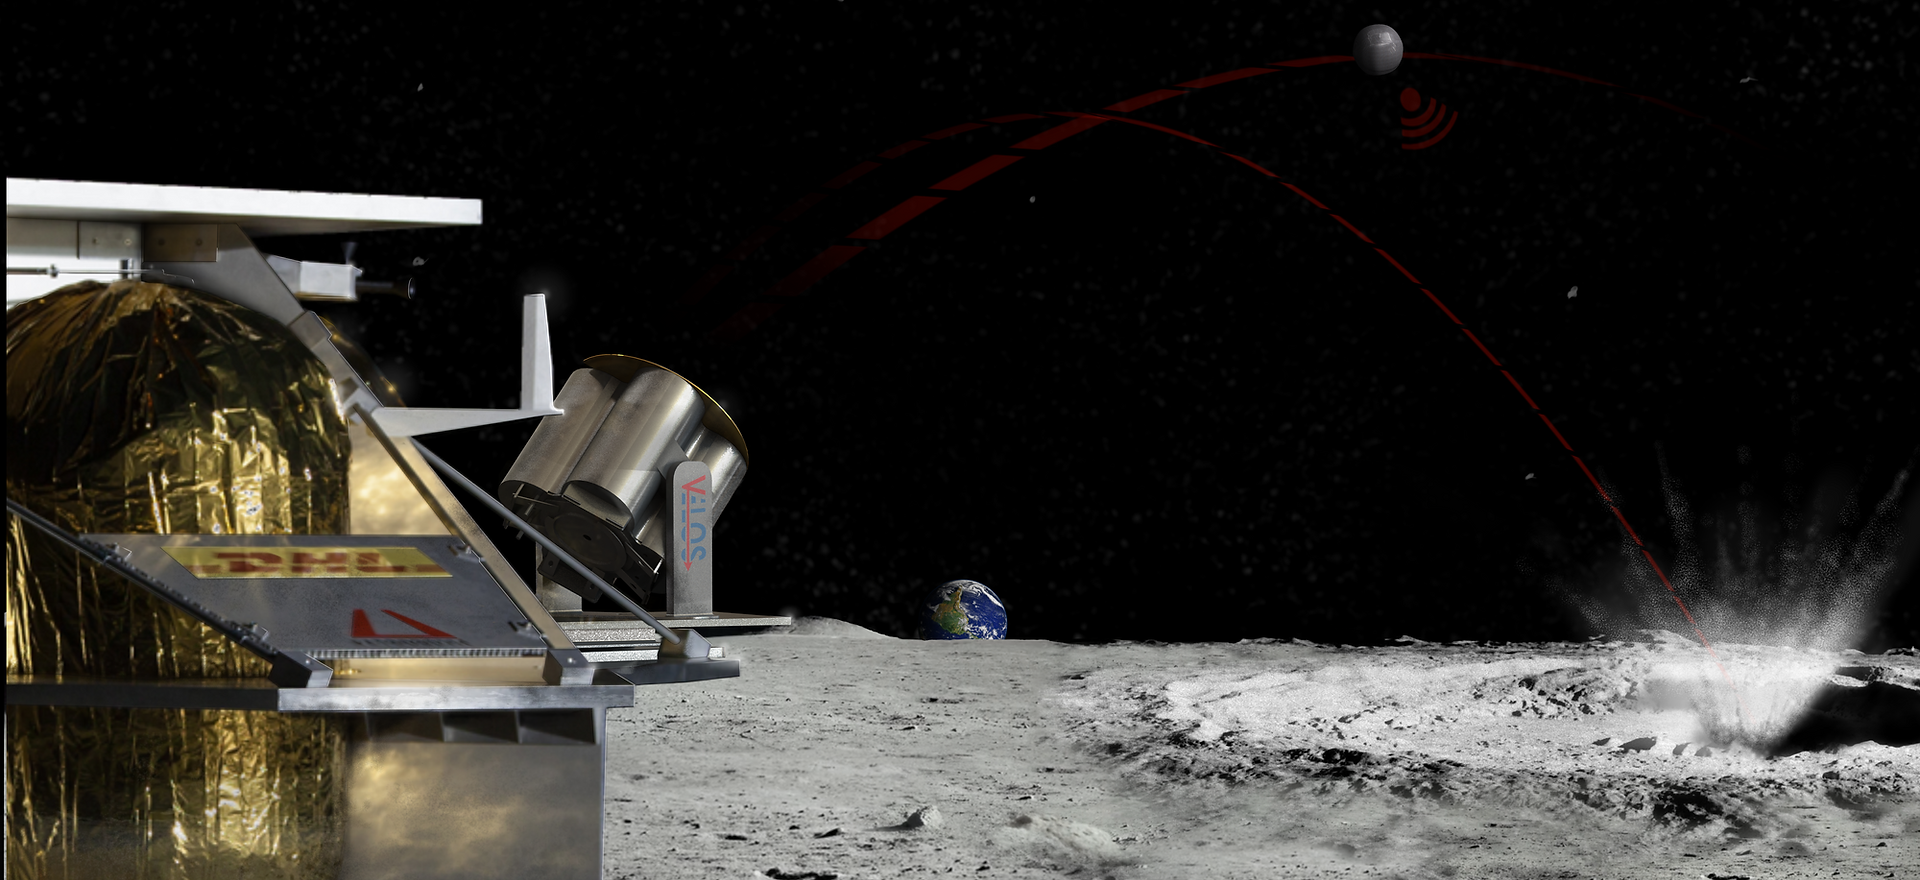 VELOS Launcher on the Peregrine Lander at the Lunar South Pole